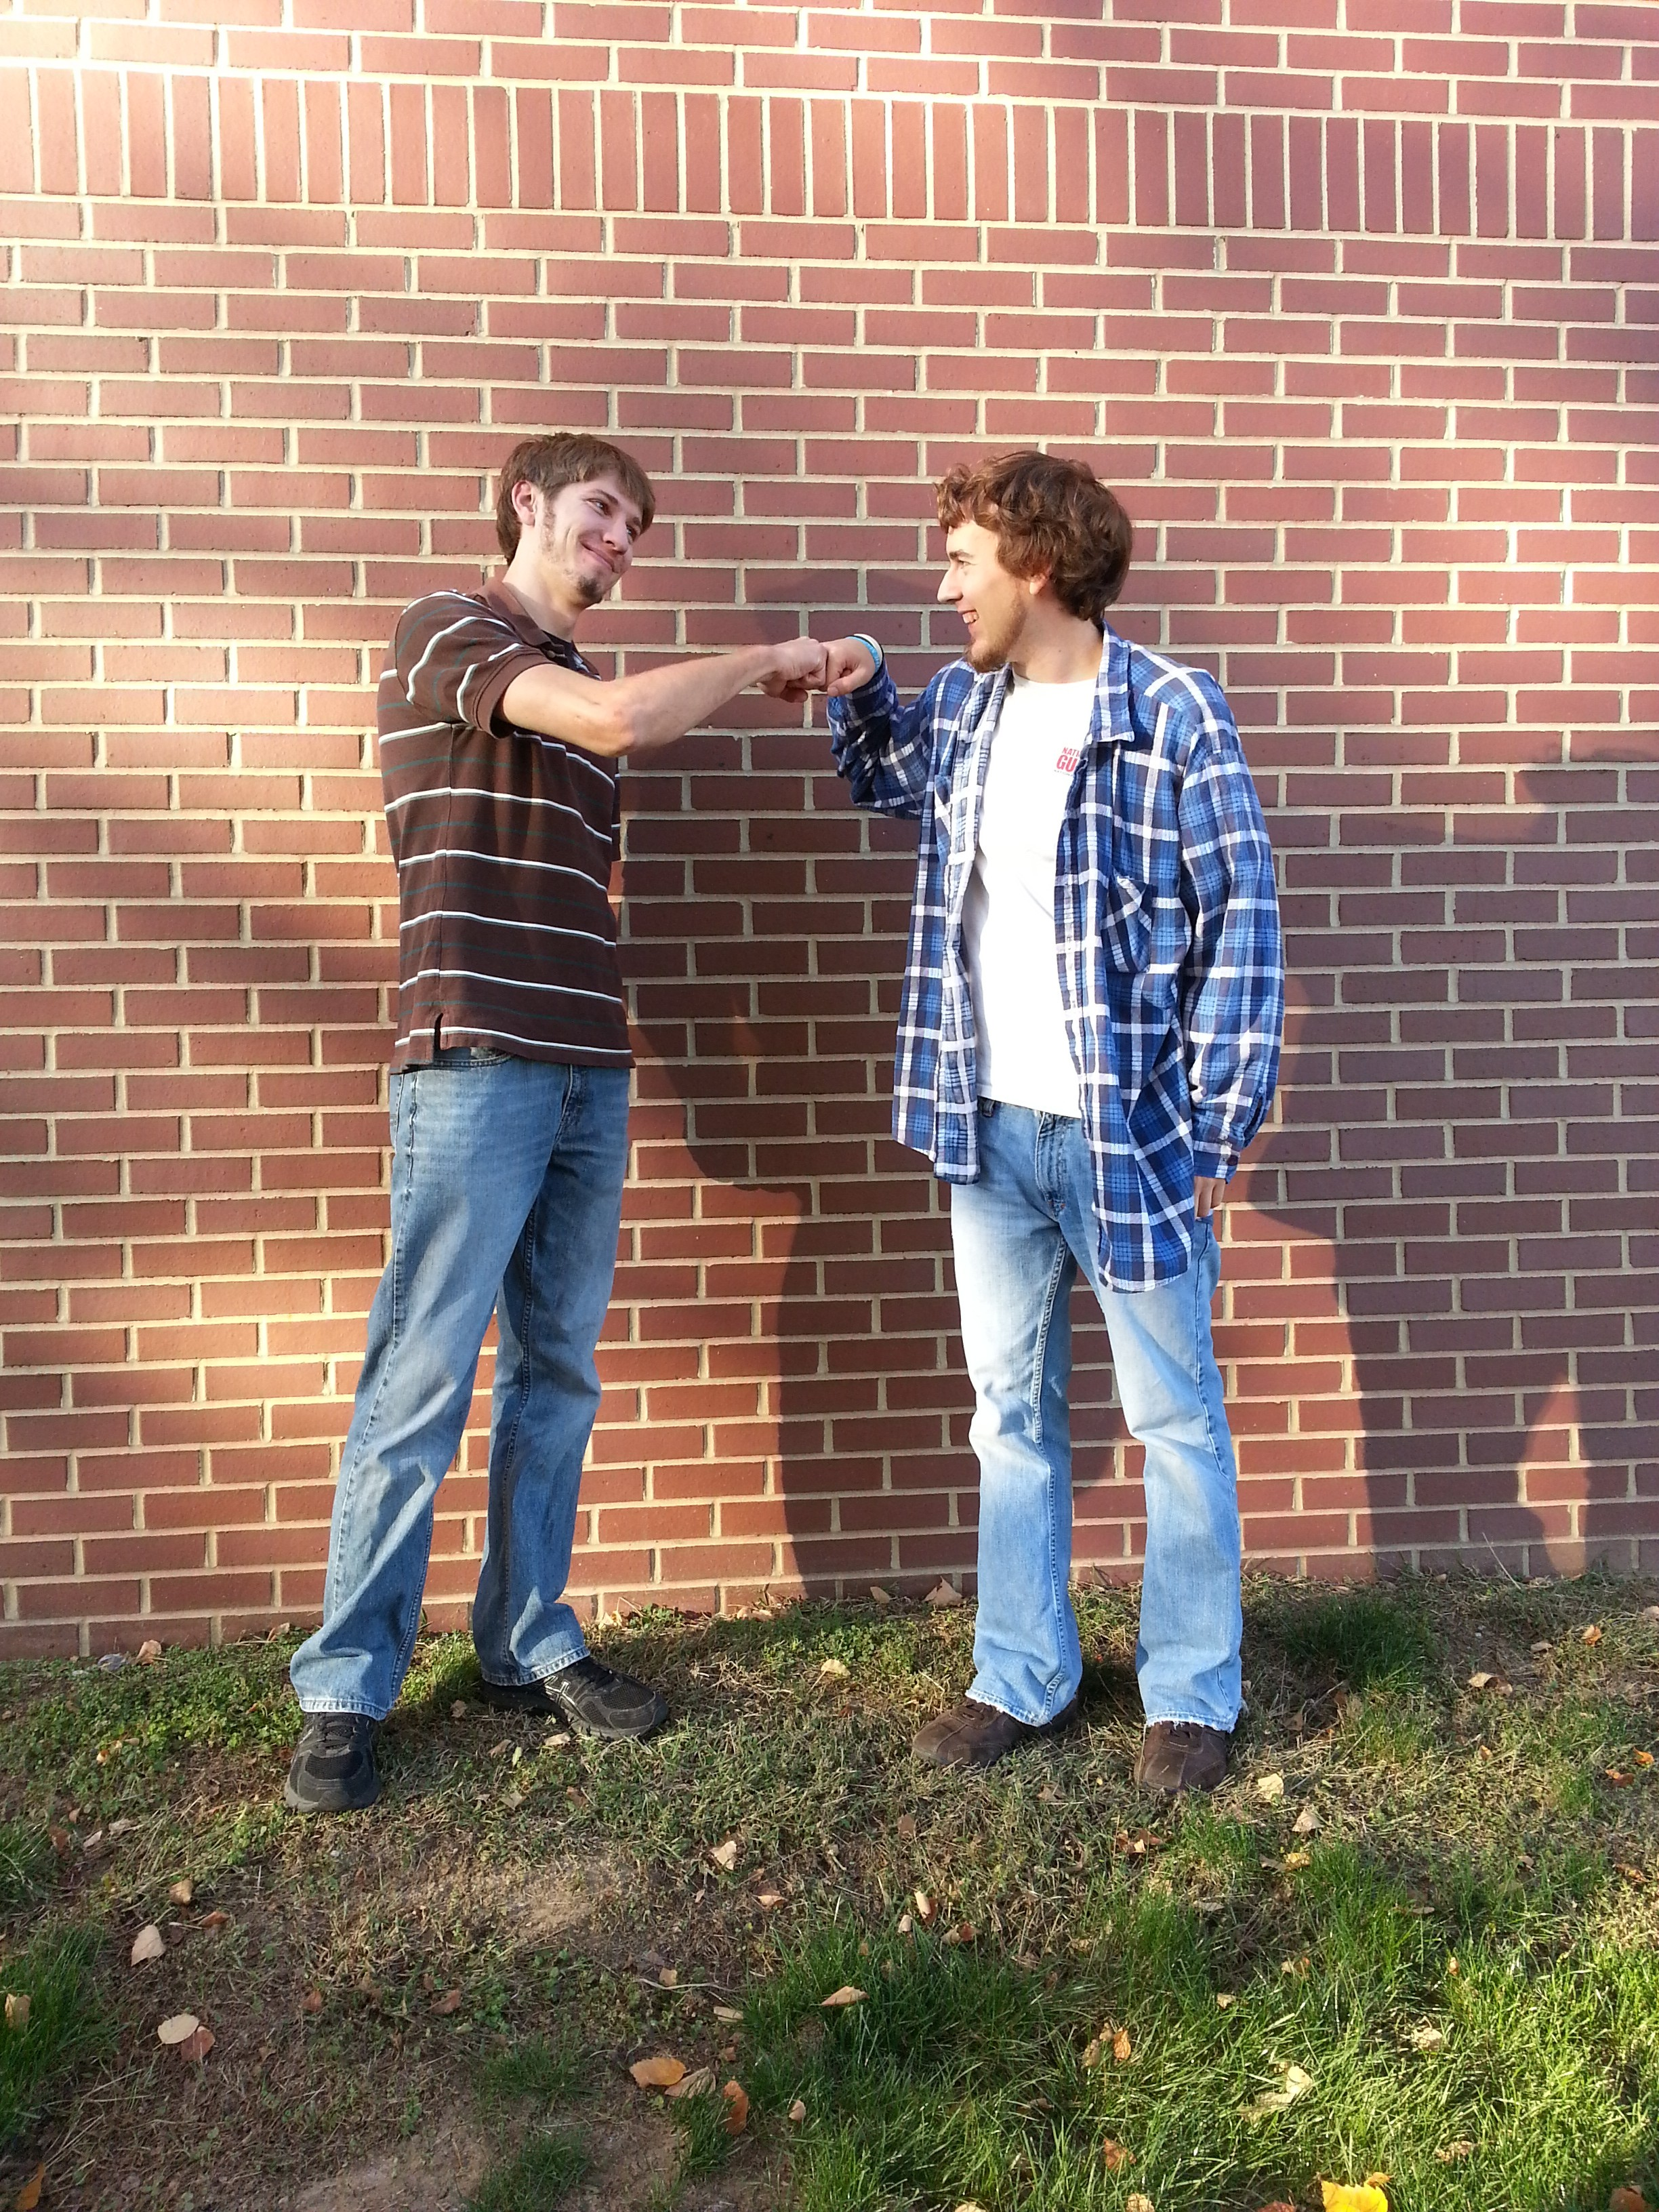 Matt Bauman and Thomas Hajny bro-fist their troubles away.